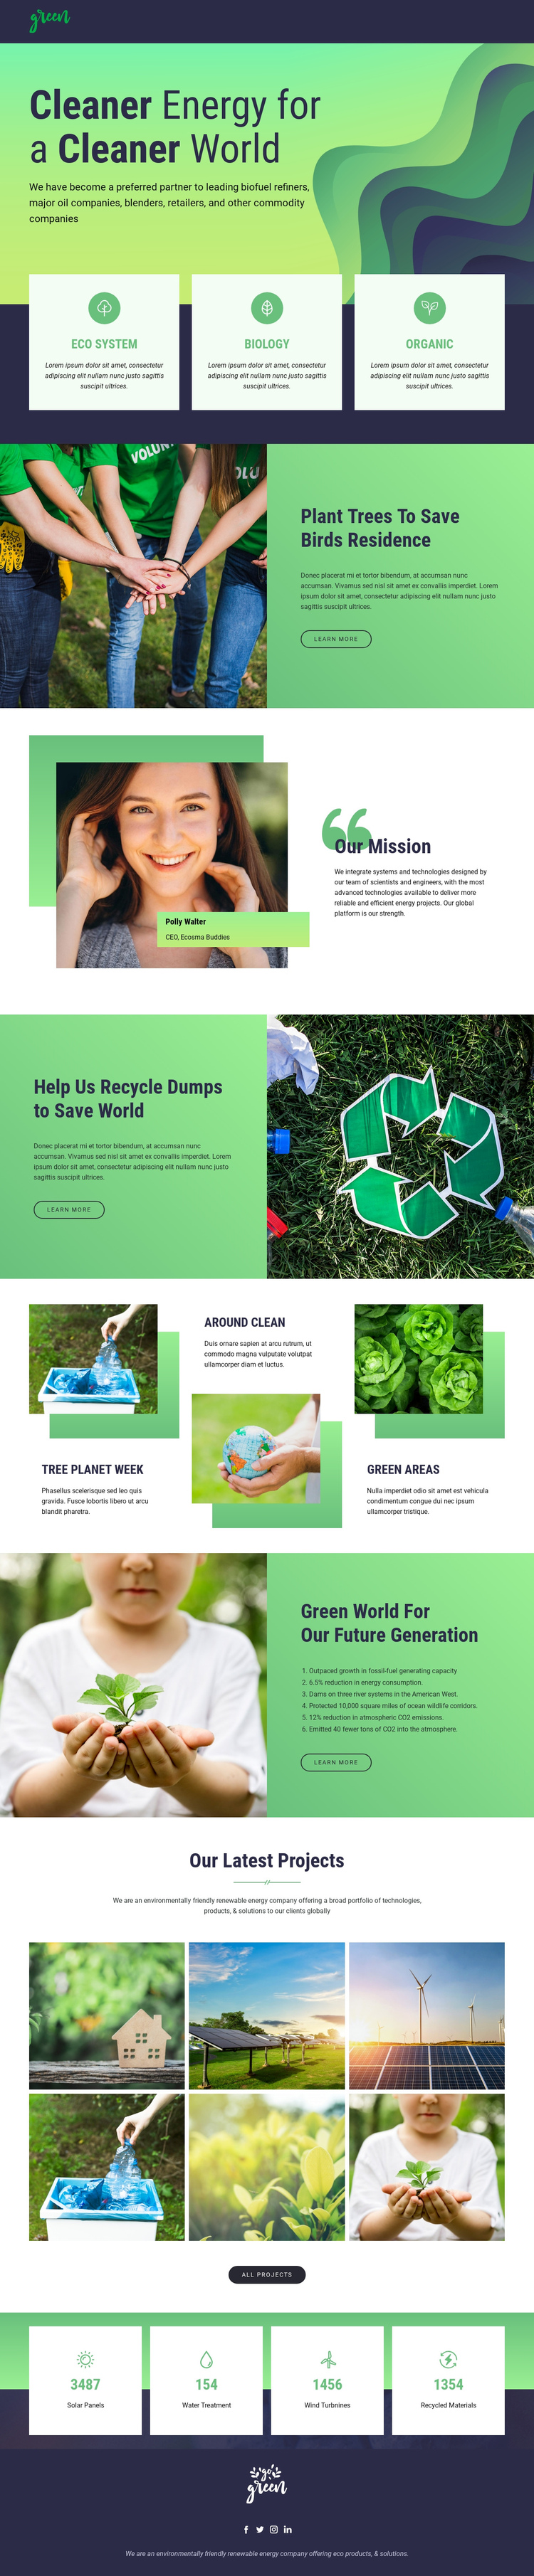 Clean energy to save nature Website Builder Software